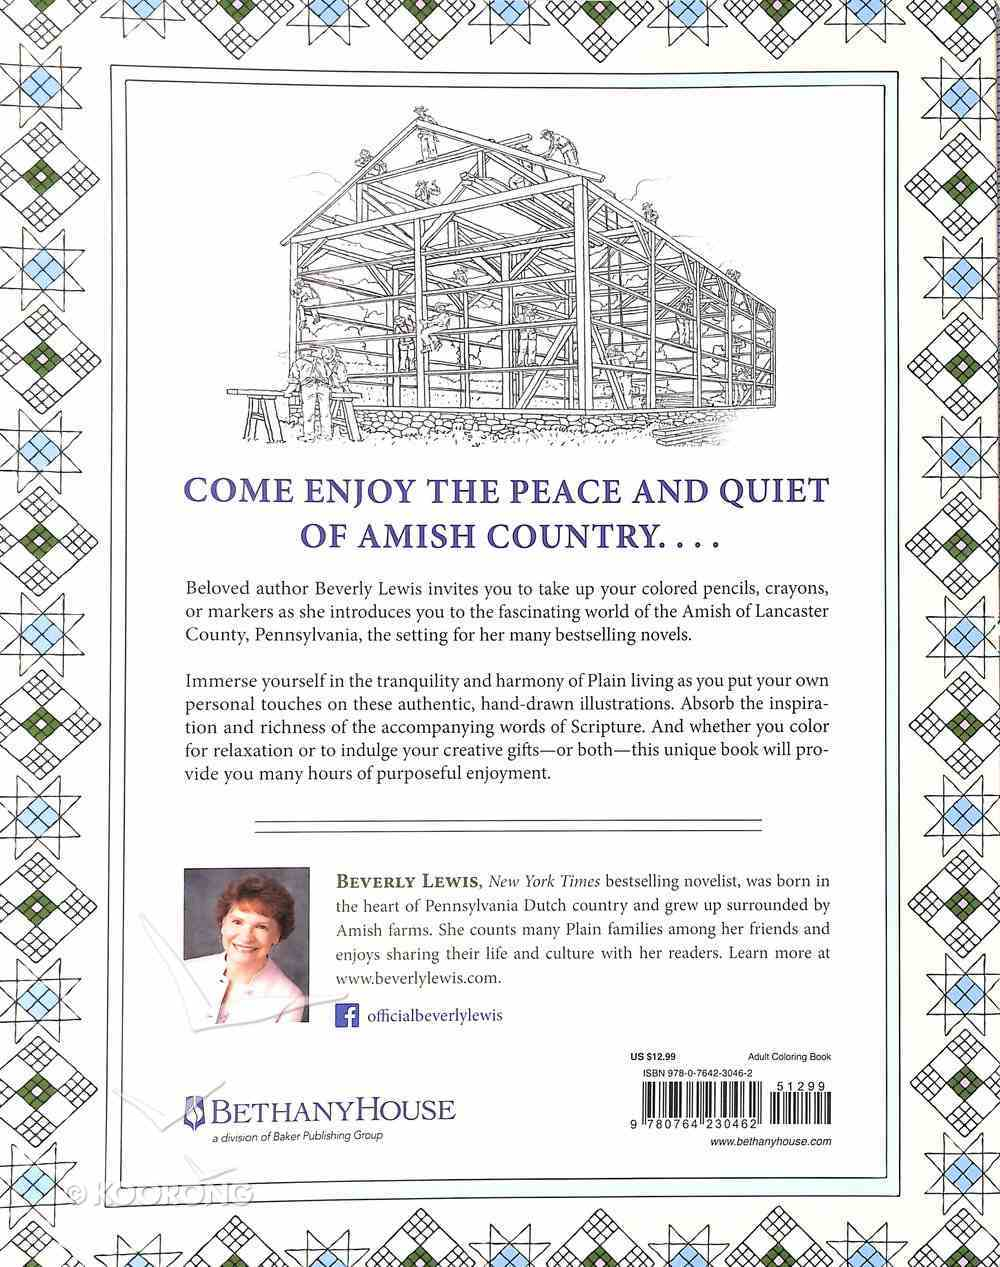 The Beverly Lewis Amish Coloring Book (Adult Coloring Books Series) Paperback